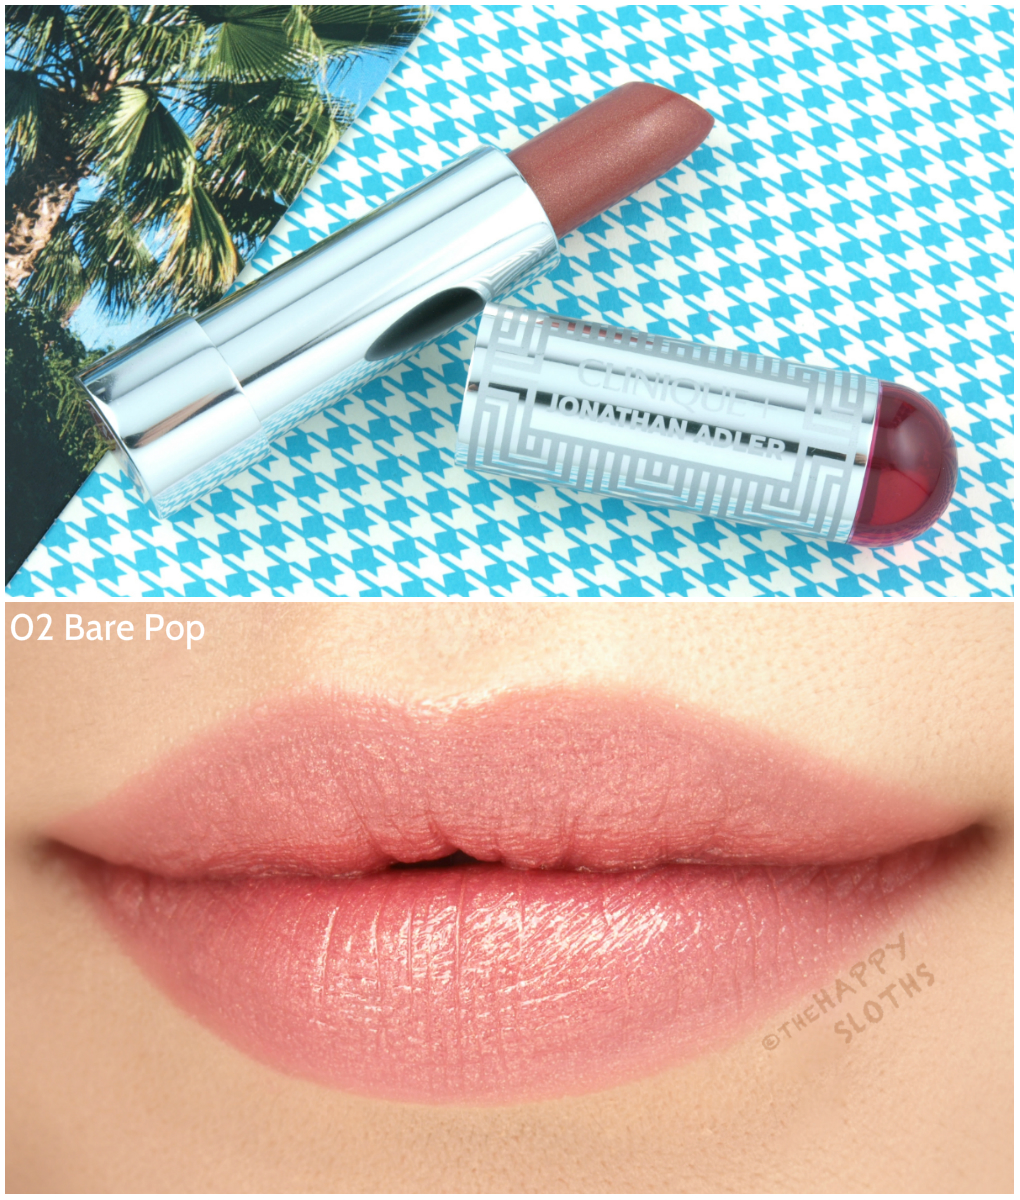 """Clinique + Jonathan Adler Collection   Lip Color + Primer Lipstick in """"02 Bare Pop"""": Review and Swatches"""